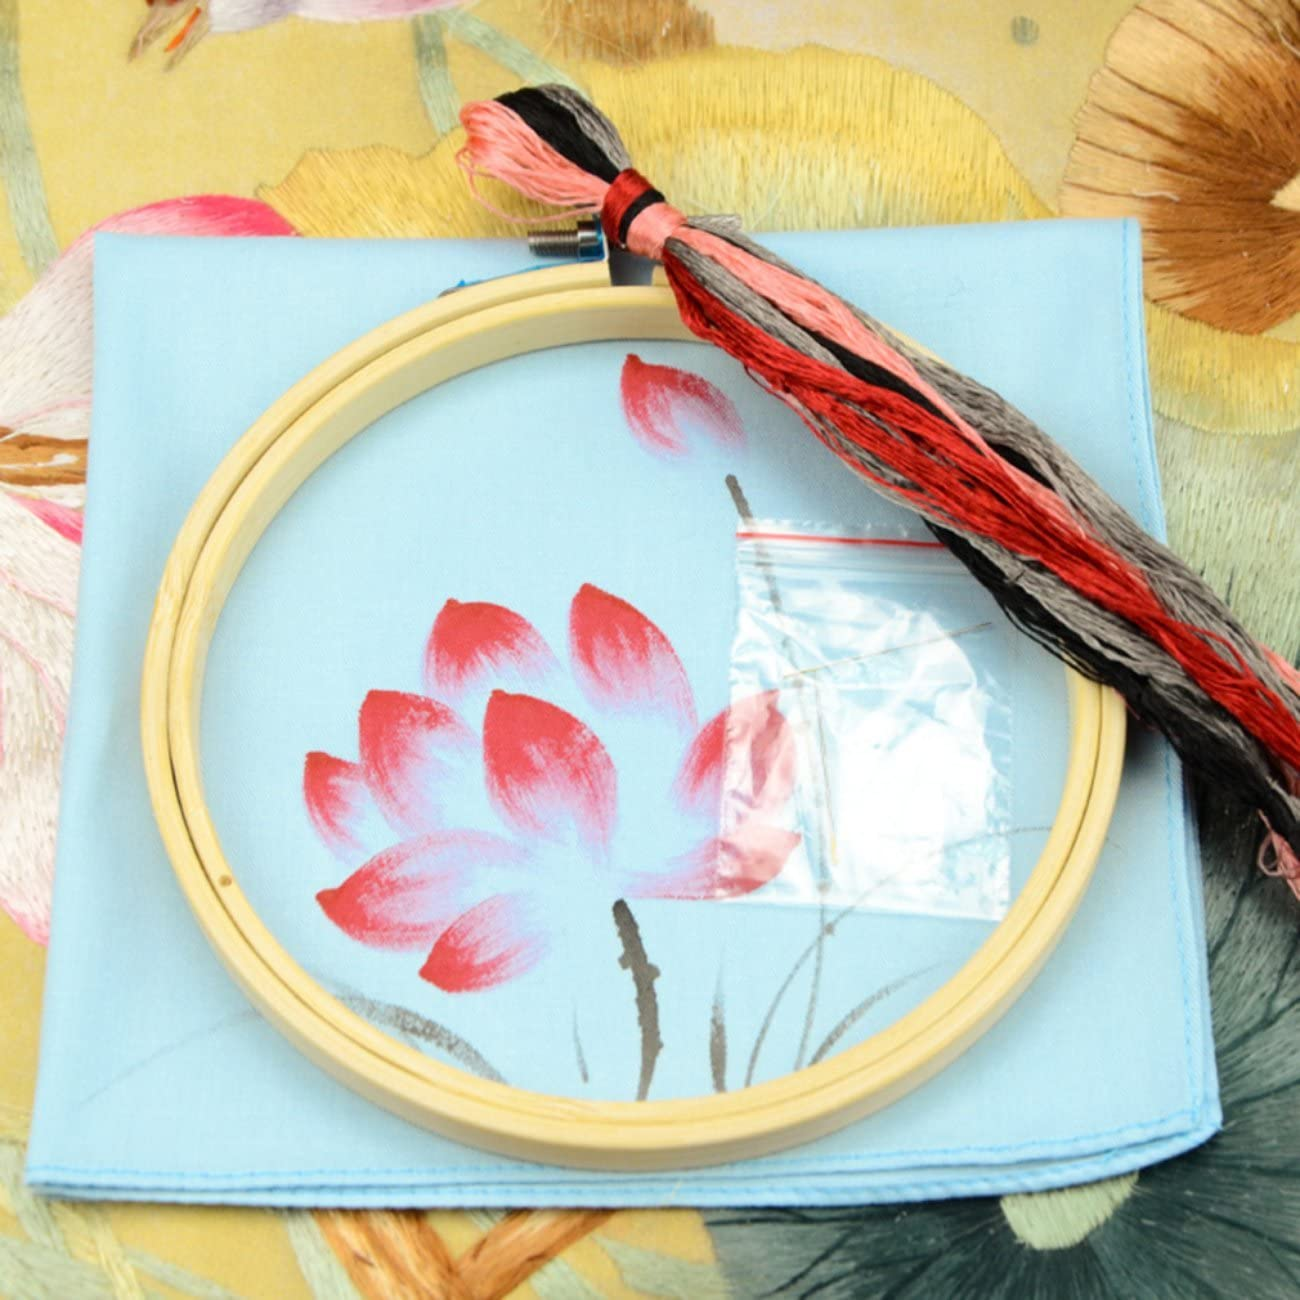 FayOK 6 Size Wooden Round Embroidery Hoops Adjustable Bamboo Circle Cross Stitch Hoop Ring Bulk Wholesale for Art Craft Handy Sewing